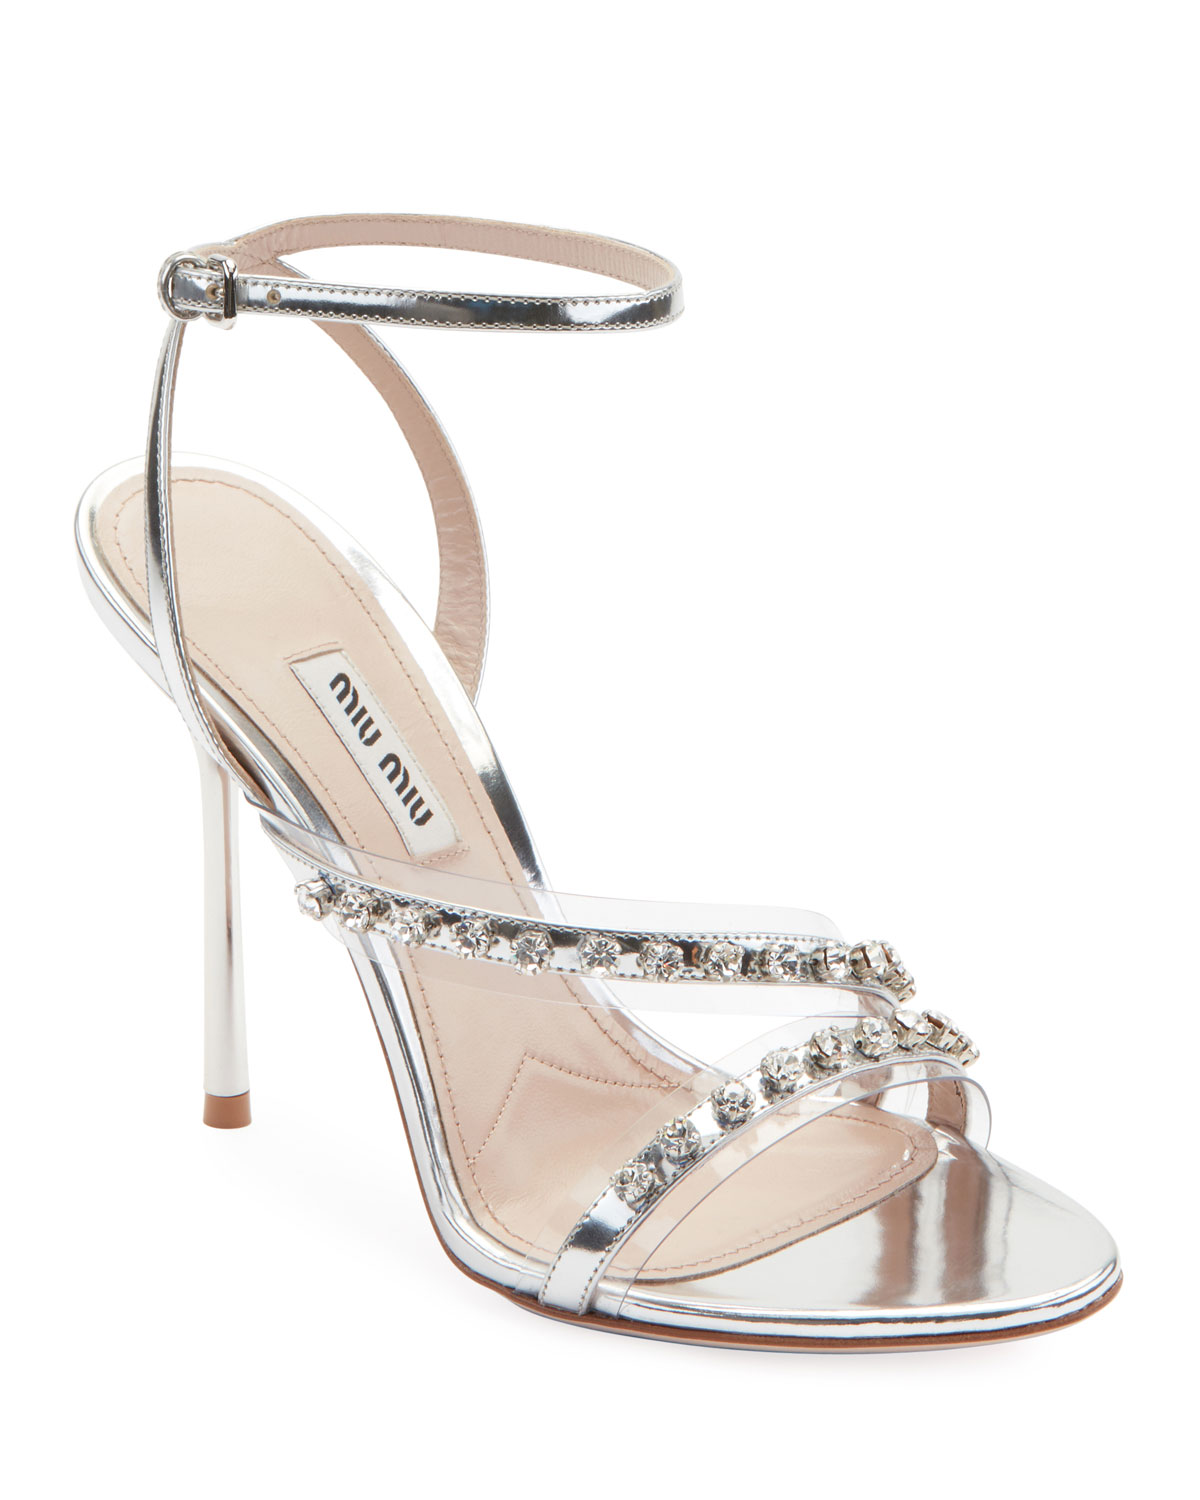 f5a83a893bc Miu Miu Metallic Jeweled High-Heel Sandals